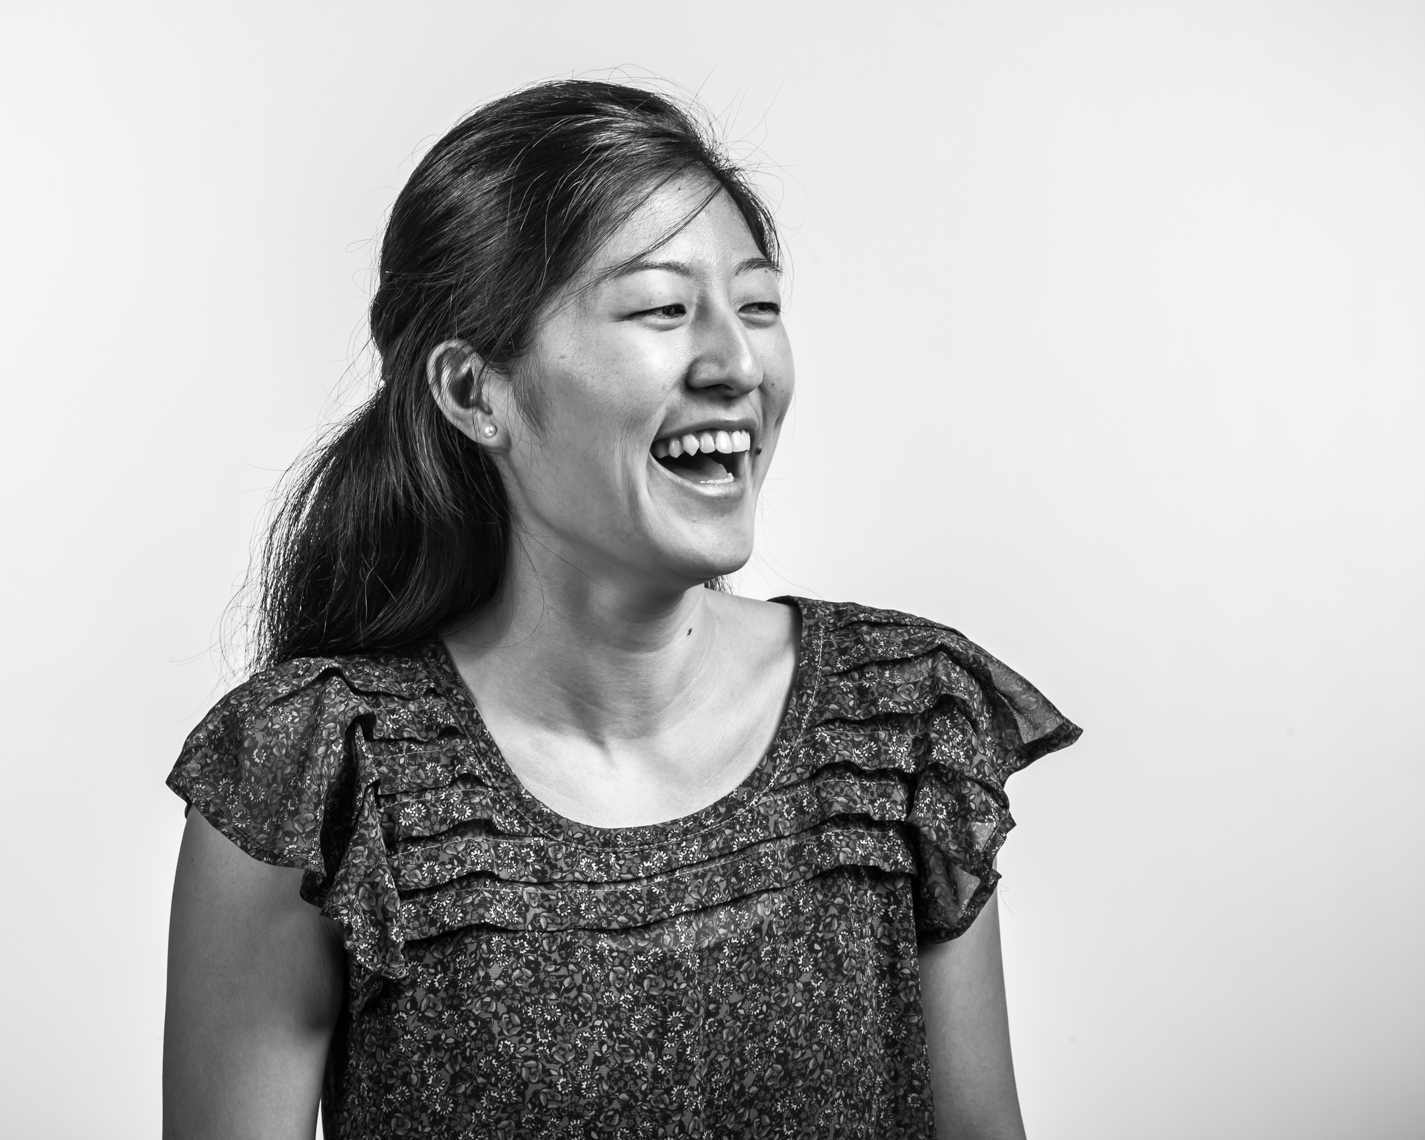 Woman laughing, joy, smile, diversity, portrait, activism, immigrant rights, mission, United Methodist Women, human rights, Nashville portrait photographer, corporate, head shot